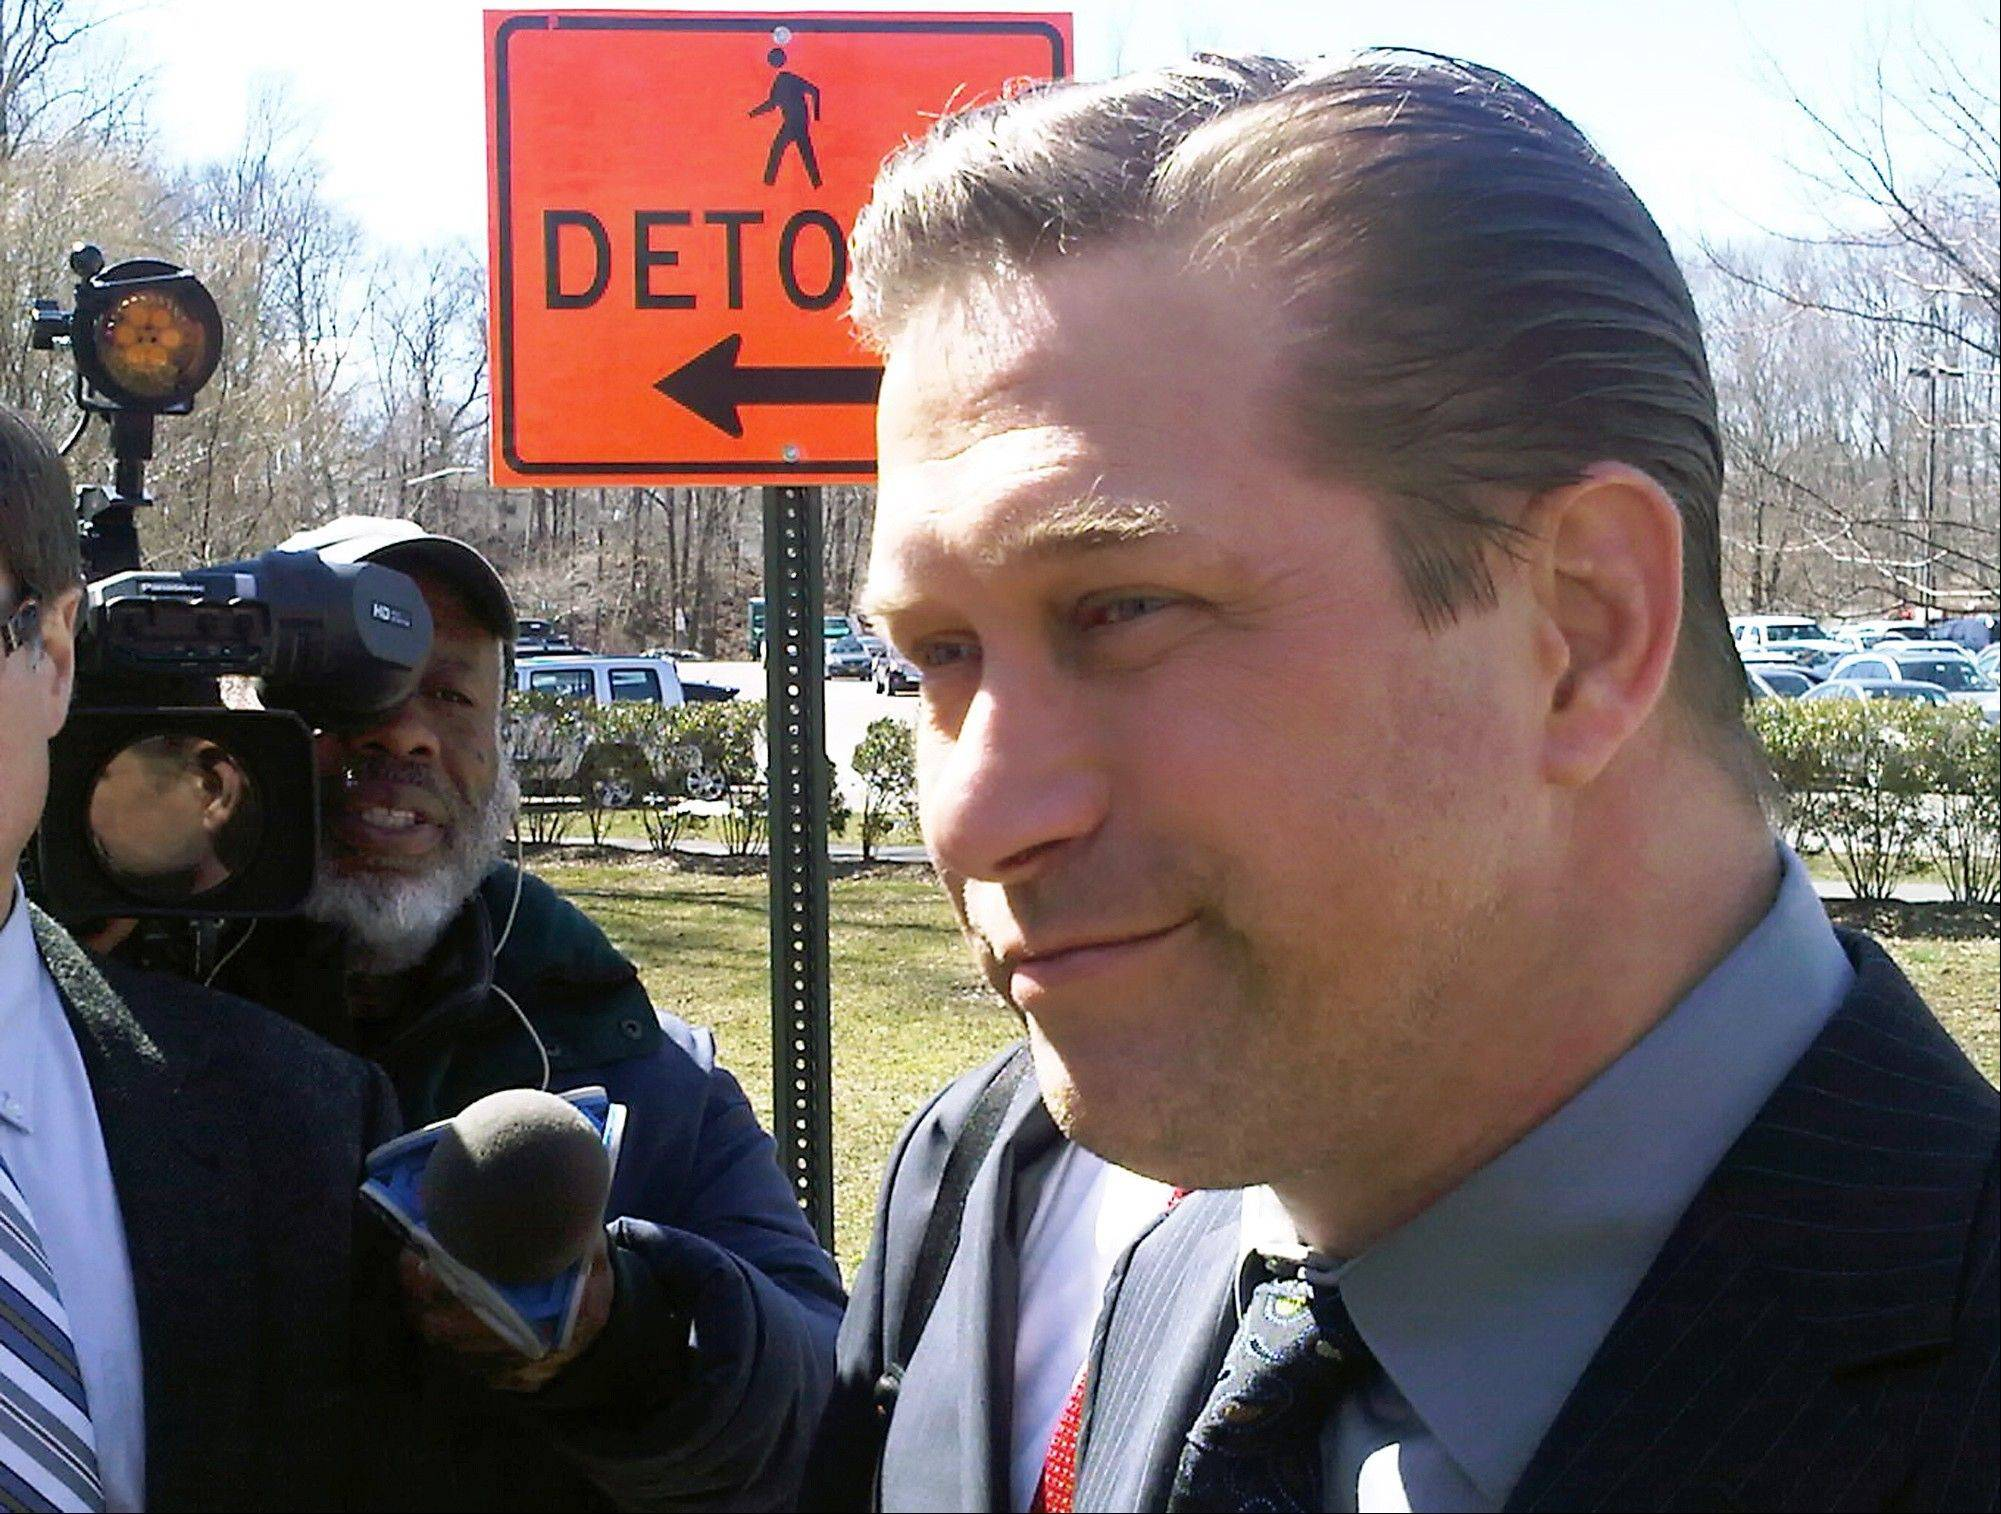 Actor Stephen Baldwin leaves Rockland County Court in New City, N.Y., after admitting he failed to pay New York state income taxes for the years 2008, 2009 and 2010. Baldwin's attorney said he will turn over $100,000 Friday toward his delinquent New York tax bill.